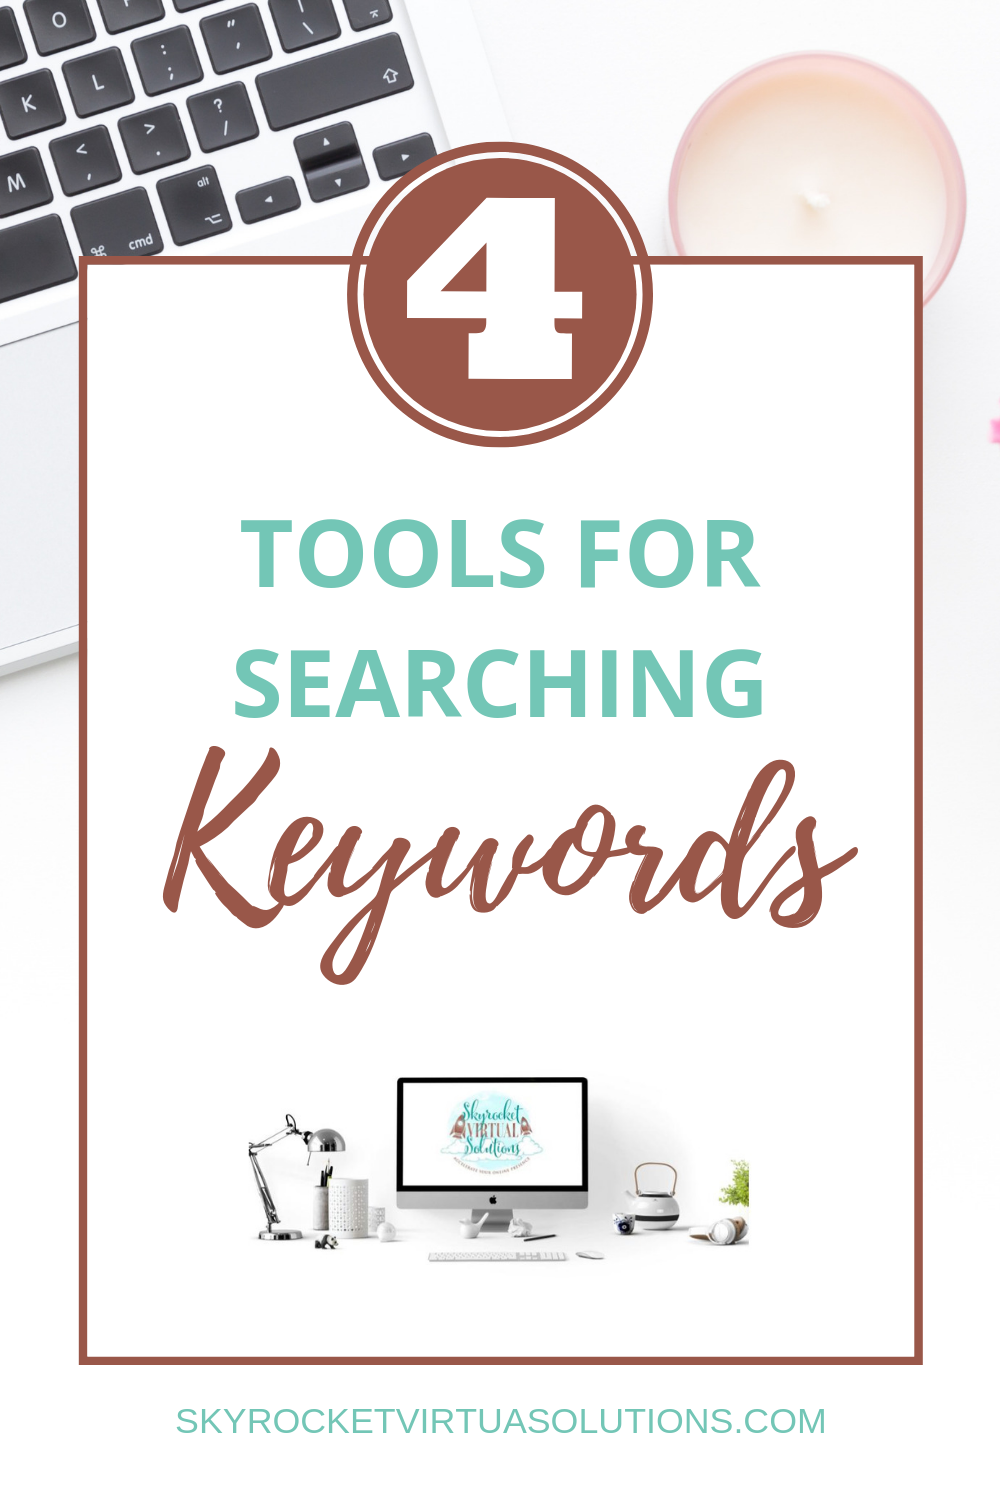 Keyword Search Using 4 Easy Tools Seo Social Media Search Engine About Me Blog